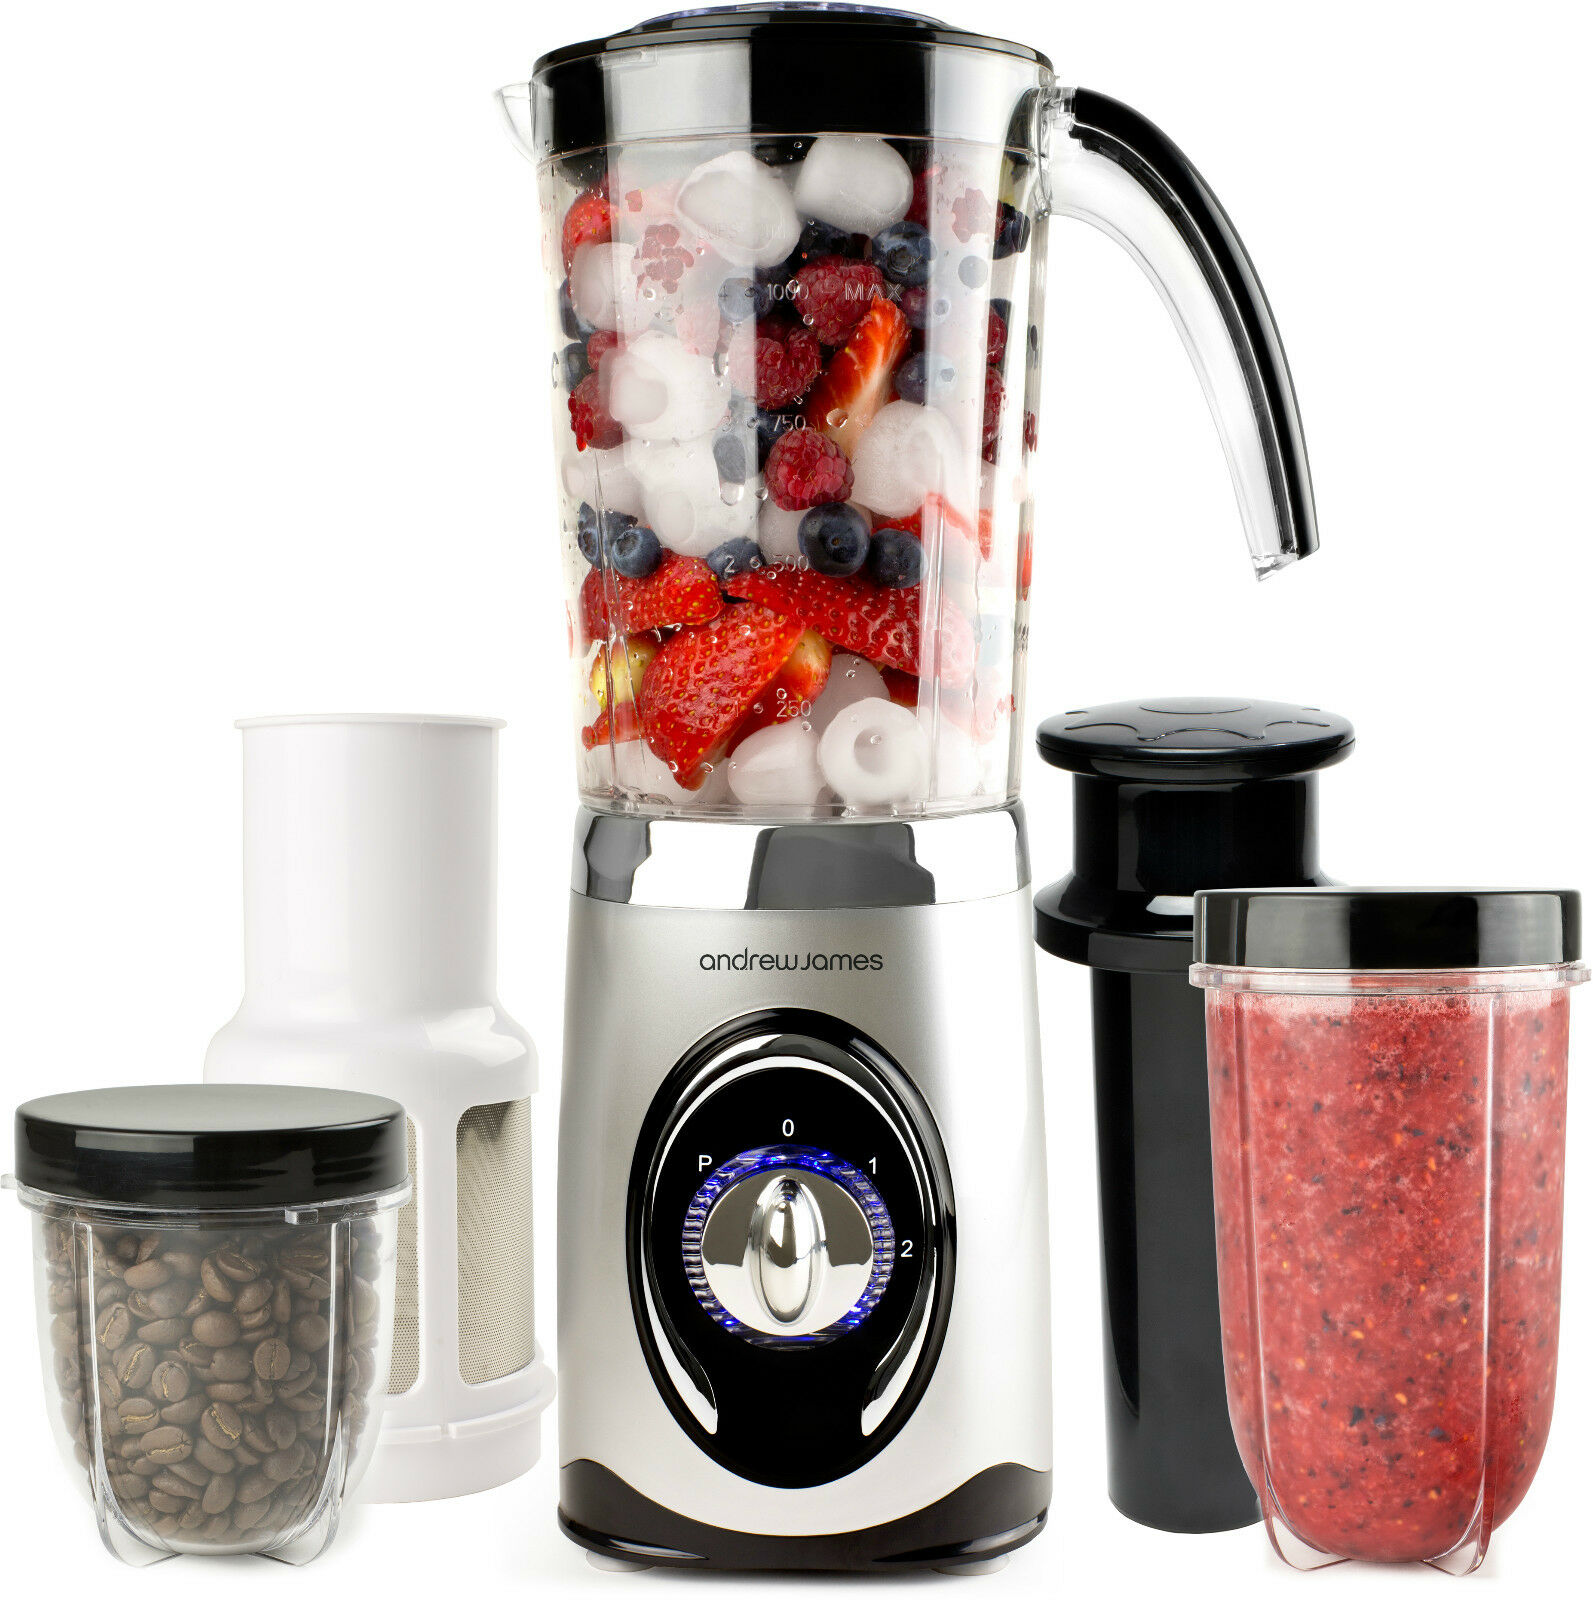 andrew james multifunctional 4 in 1 smoothie maker blender grinder juicer ebay. Black Bedroom Furniture Sets. Home Design Ideas